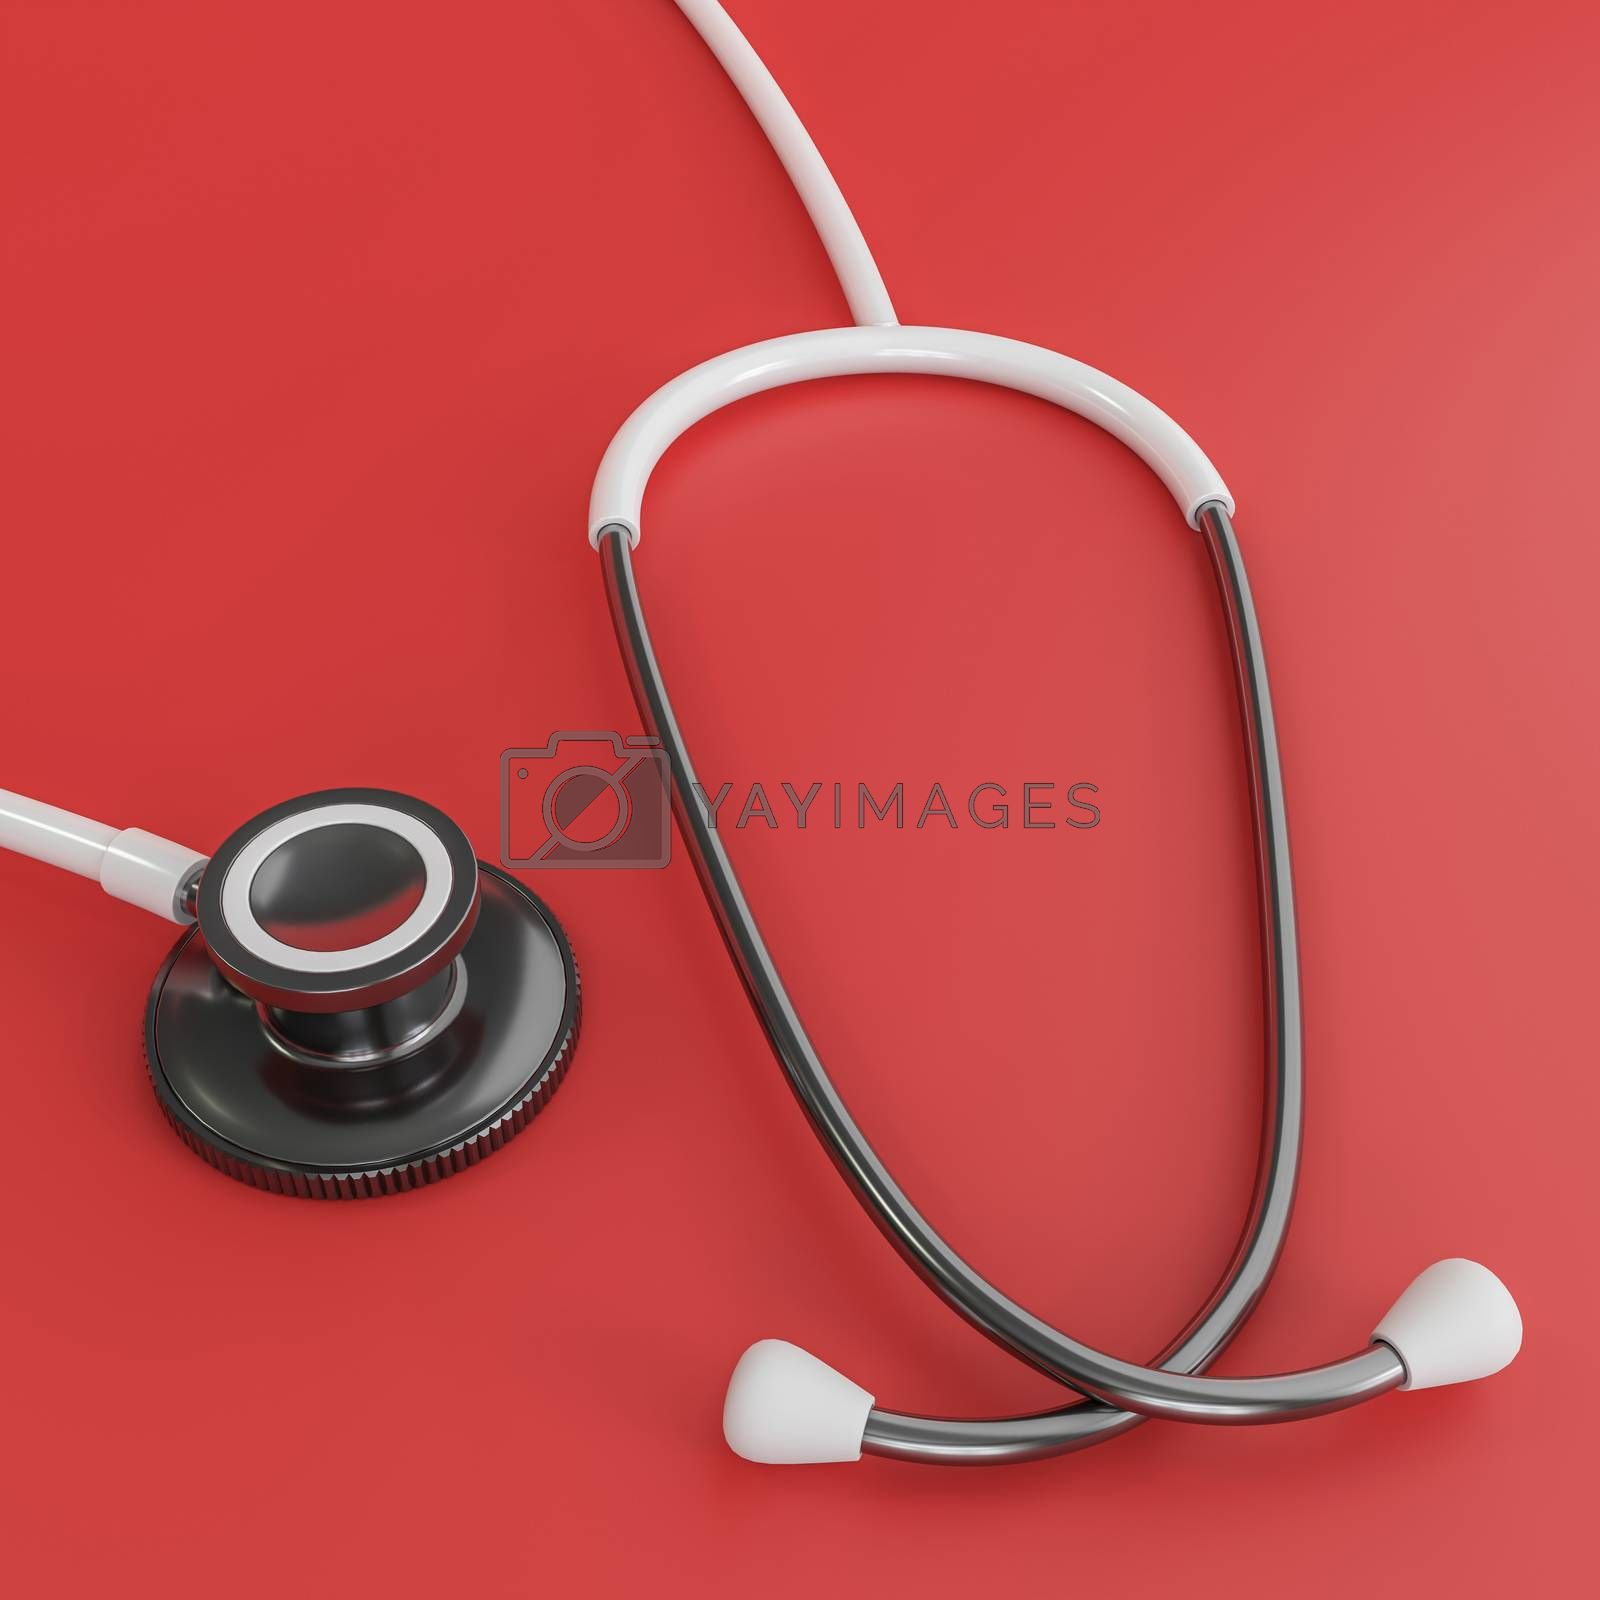 white stethoscope isolated on red background 3d illustration